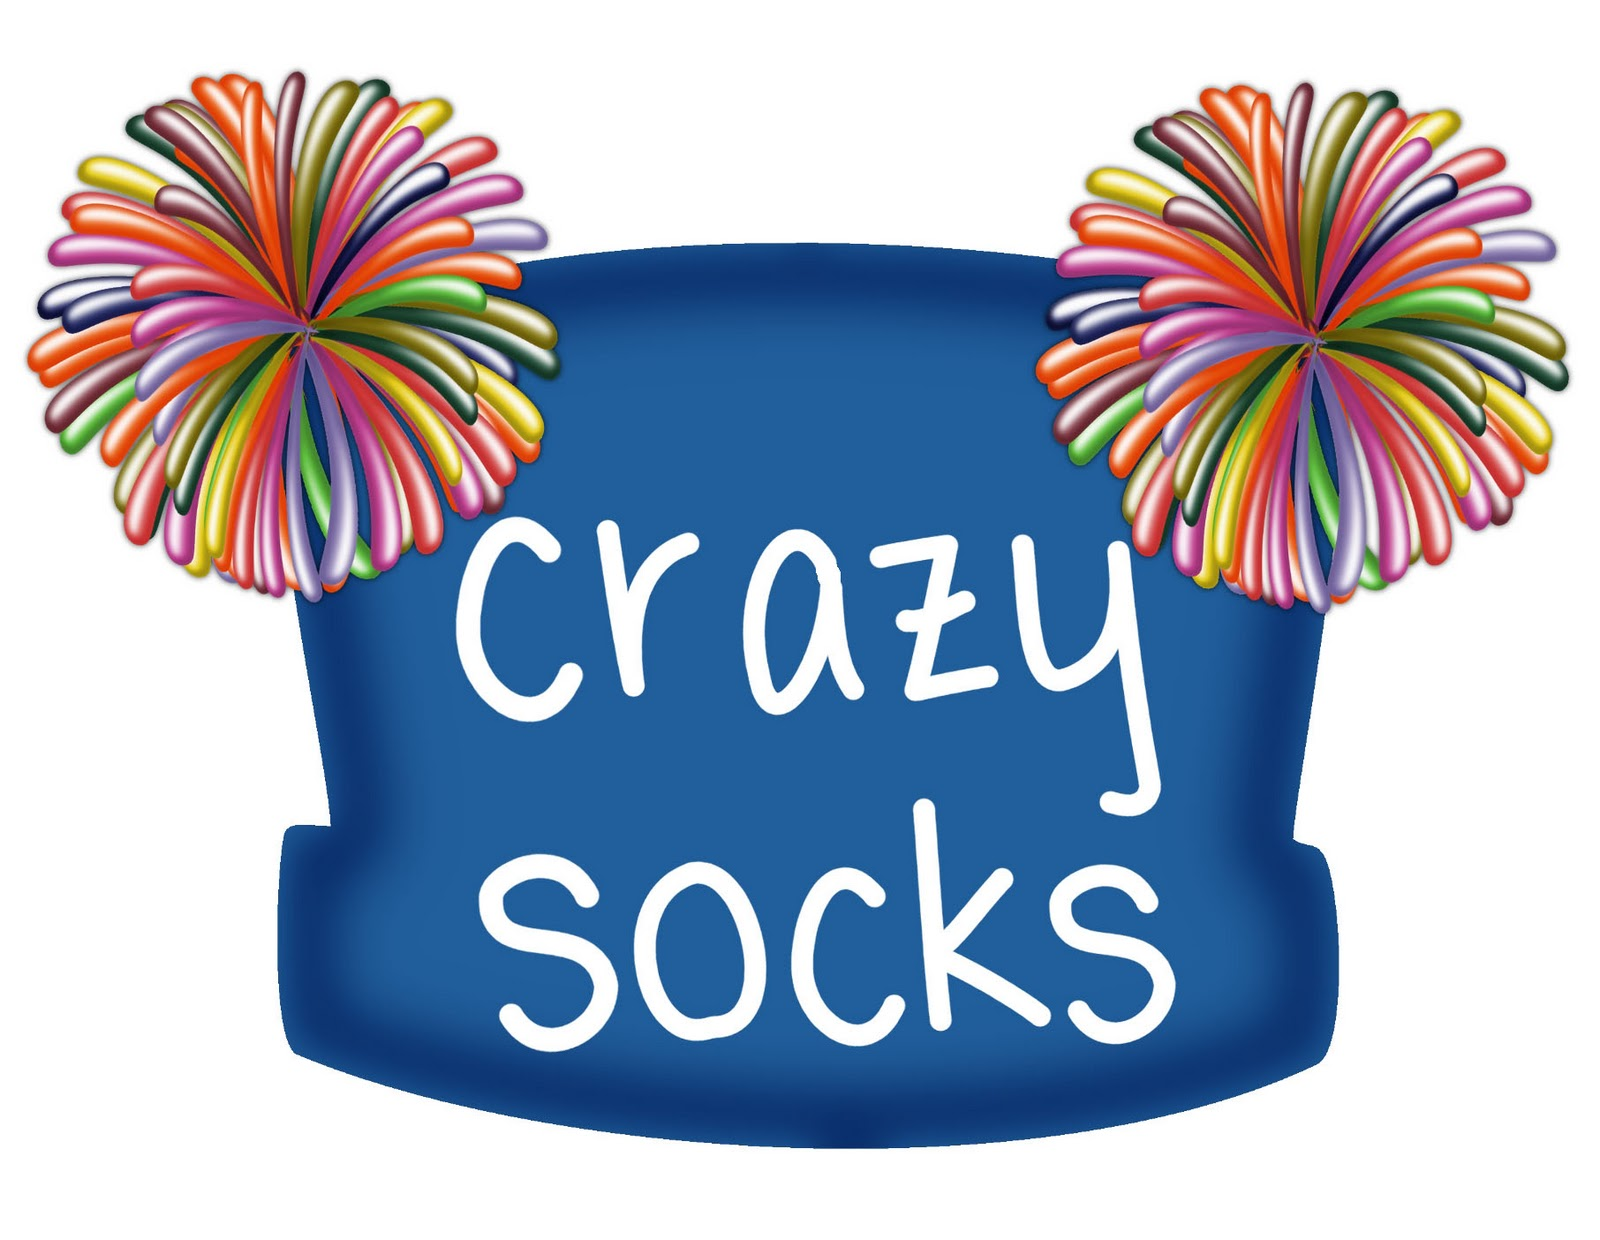 Crazy Sock Day Students Wear Crazy Decorative Socks And Bring